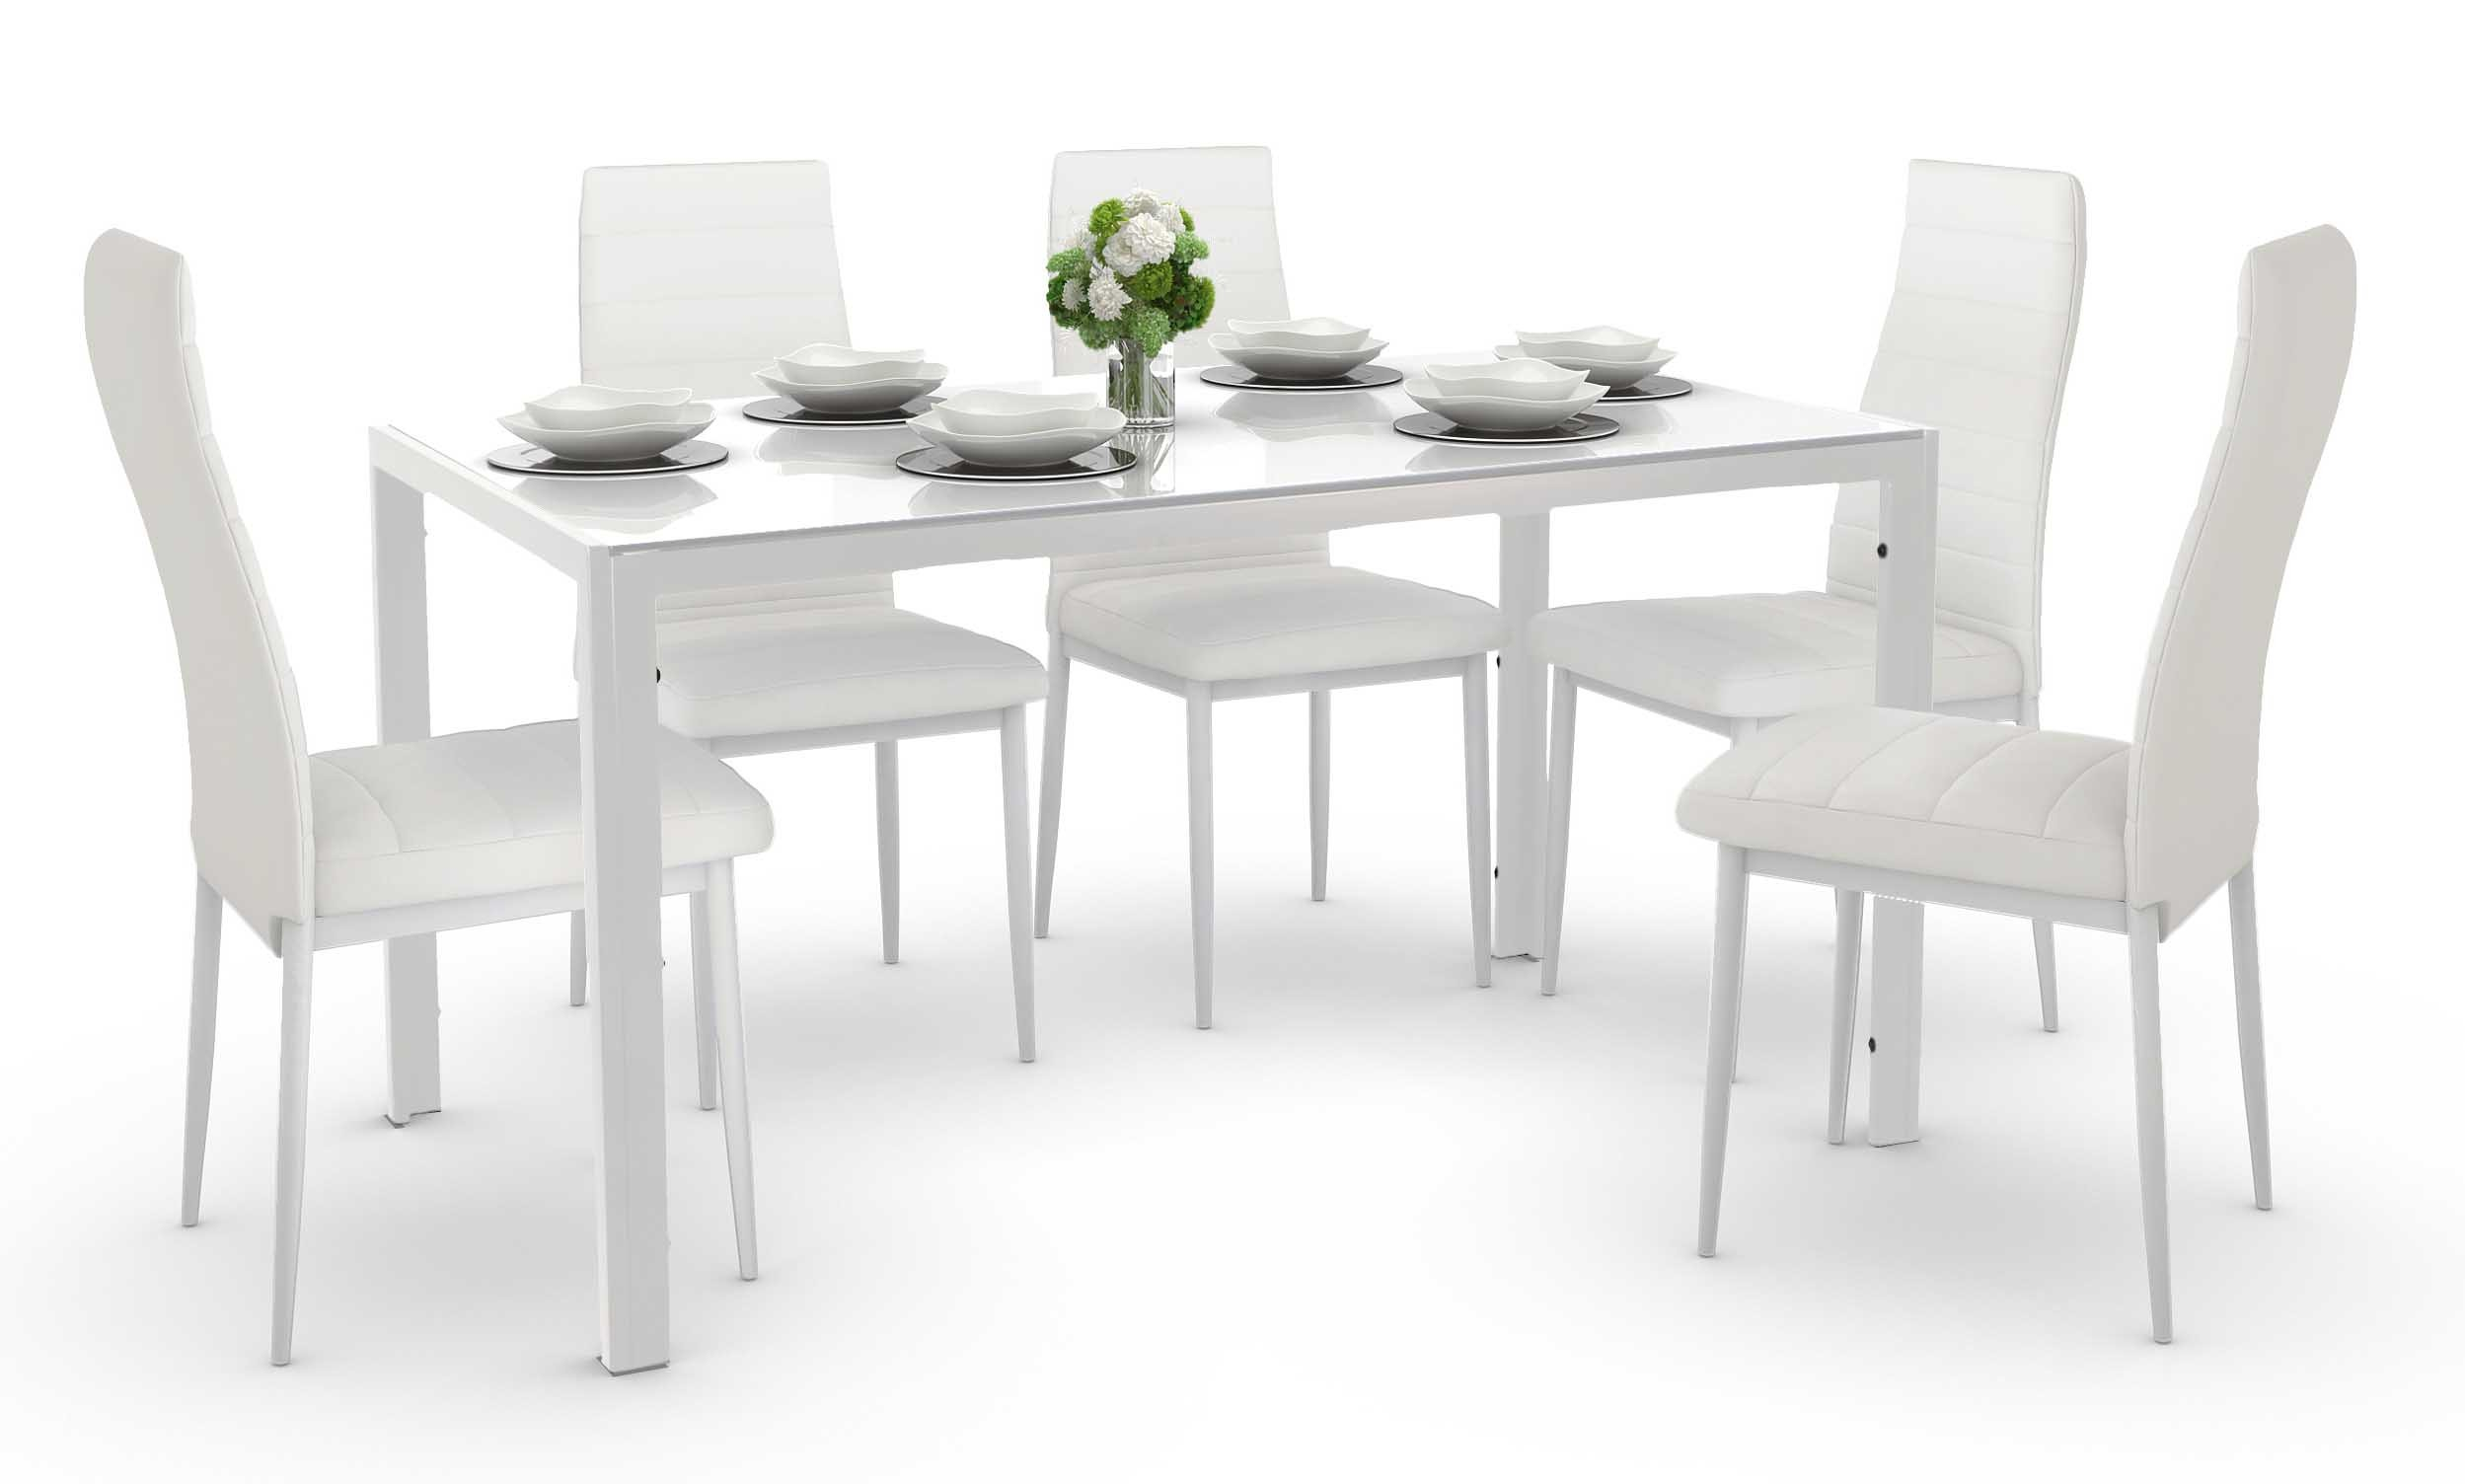 Trempe Dining Set White A 1 4 Furniture Home Décor Fortytwo